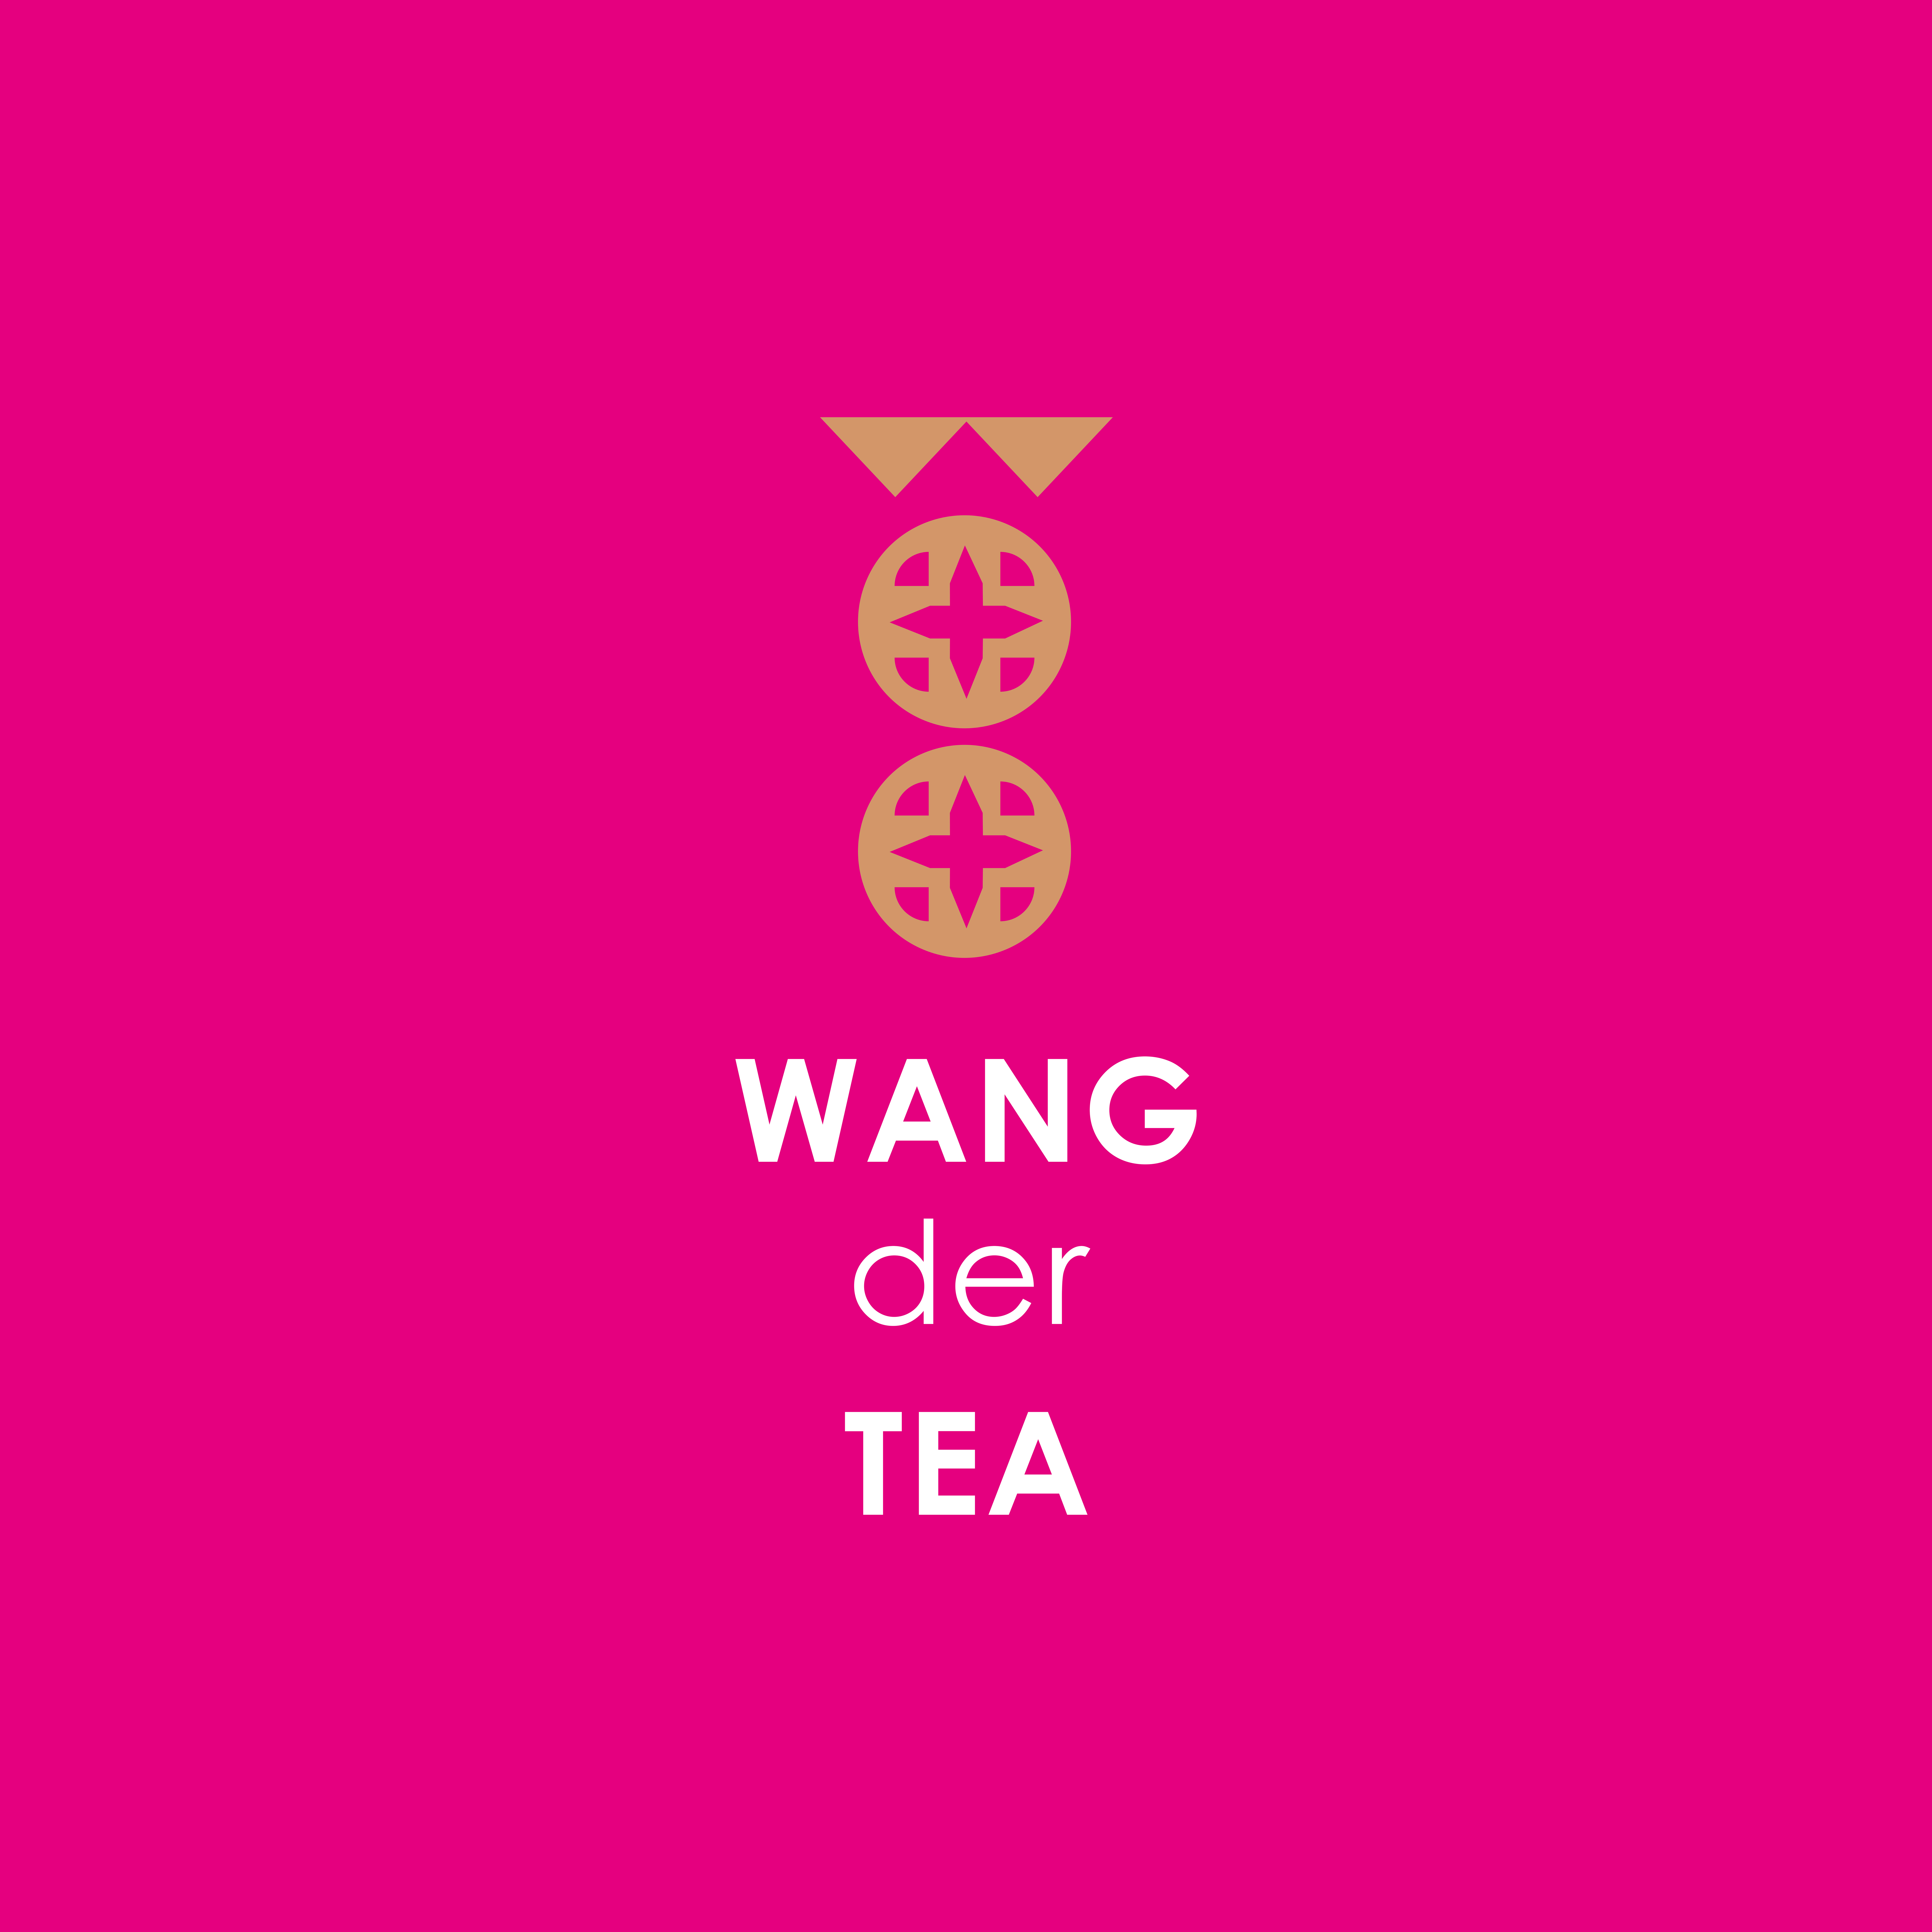 WANG der TEA